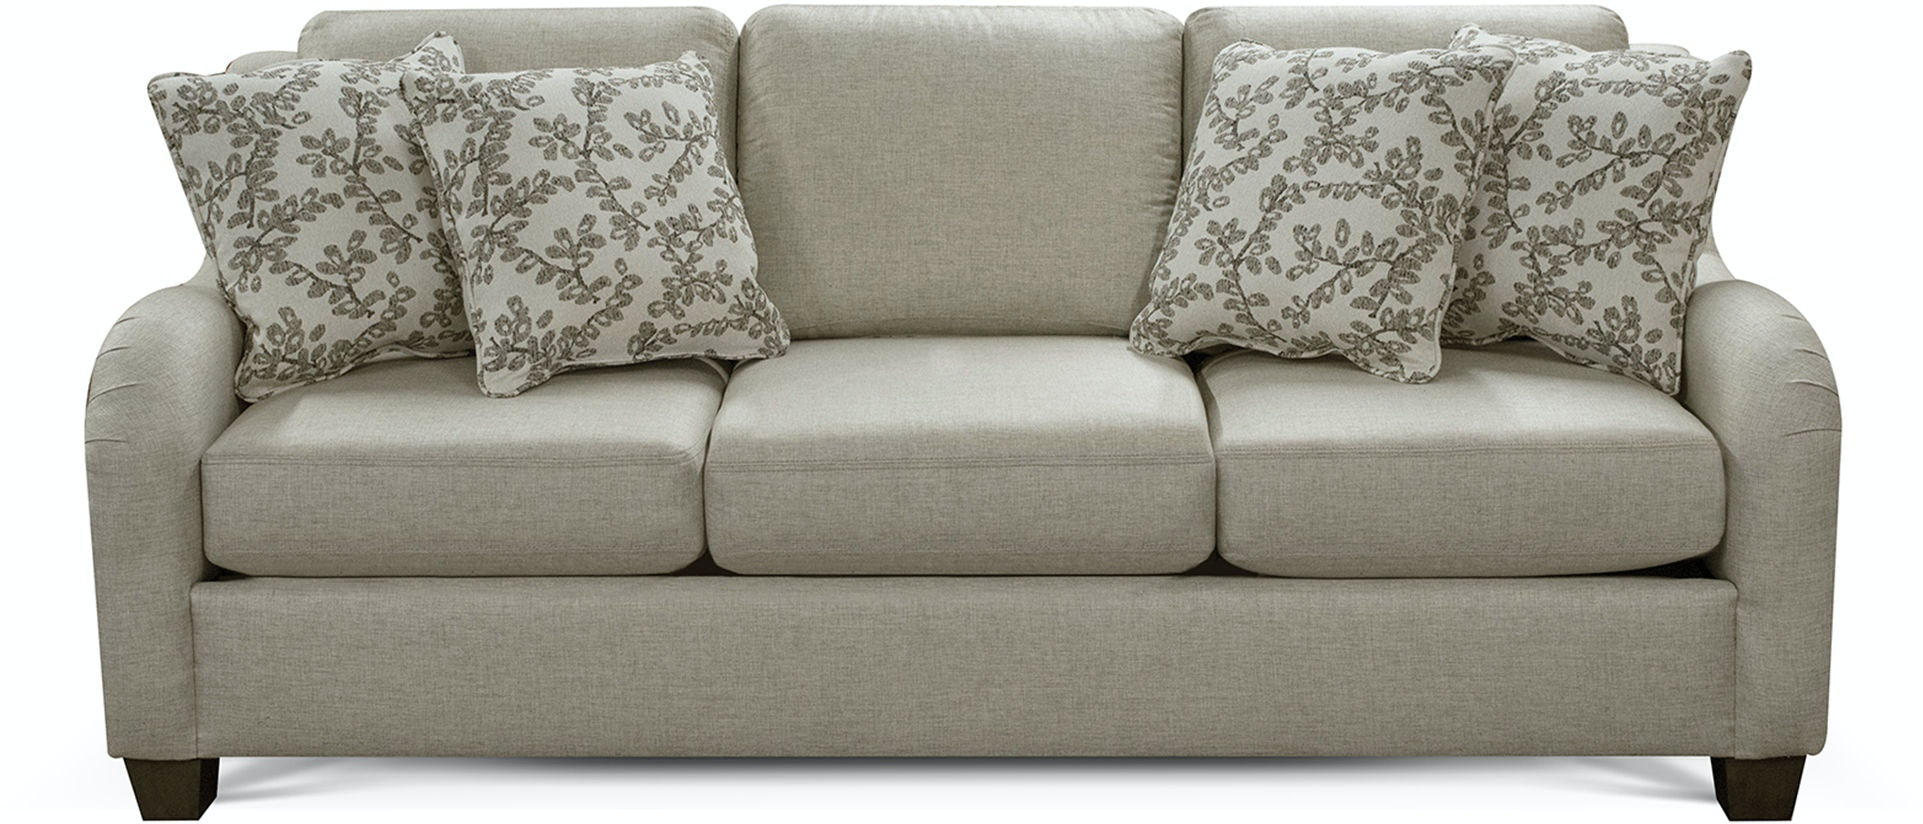 Sofas Furniture England Furniture New Tazewell Tn ~ Sleeper Sofa Knoxville Tn